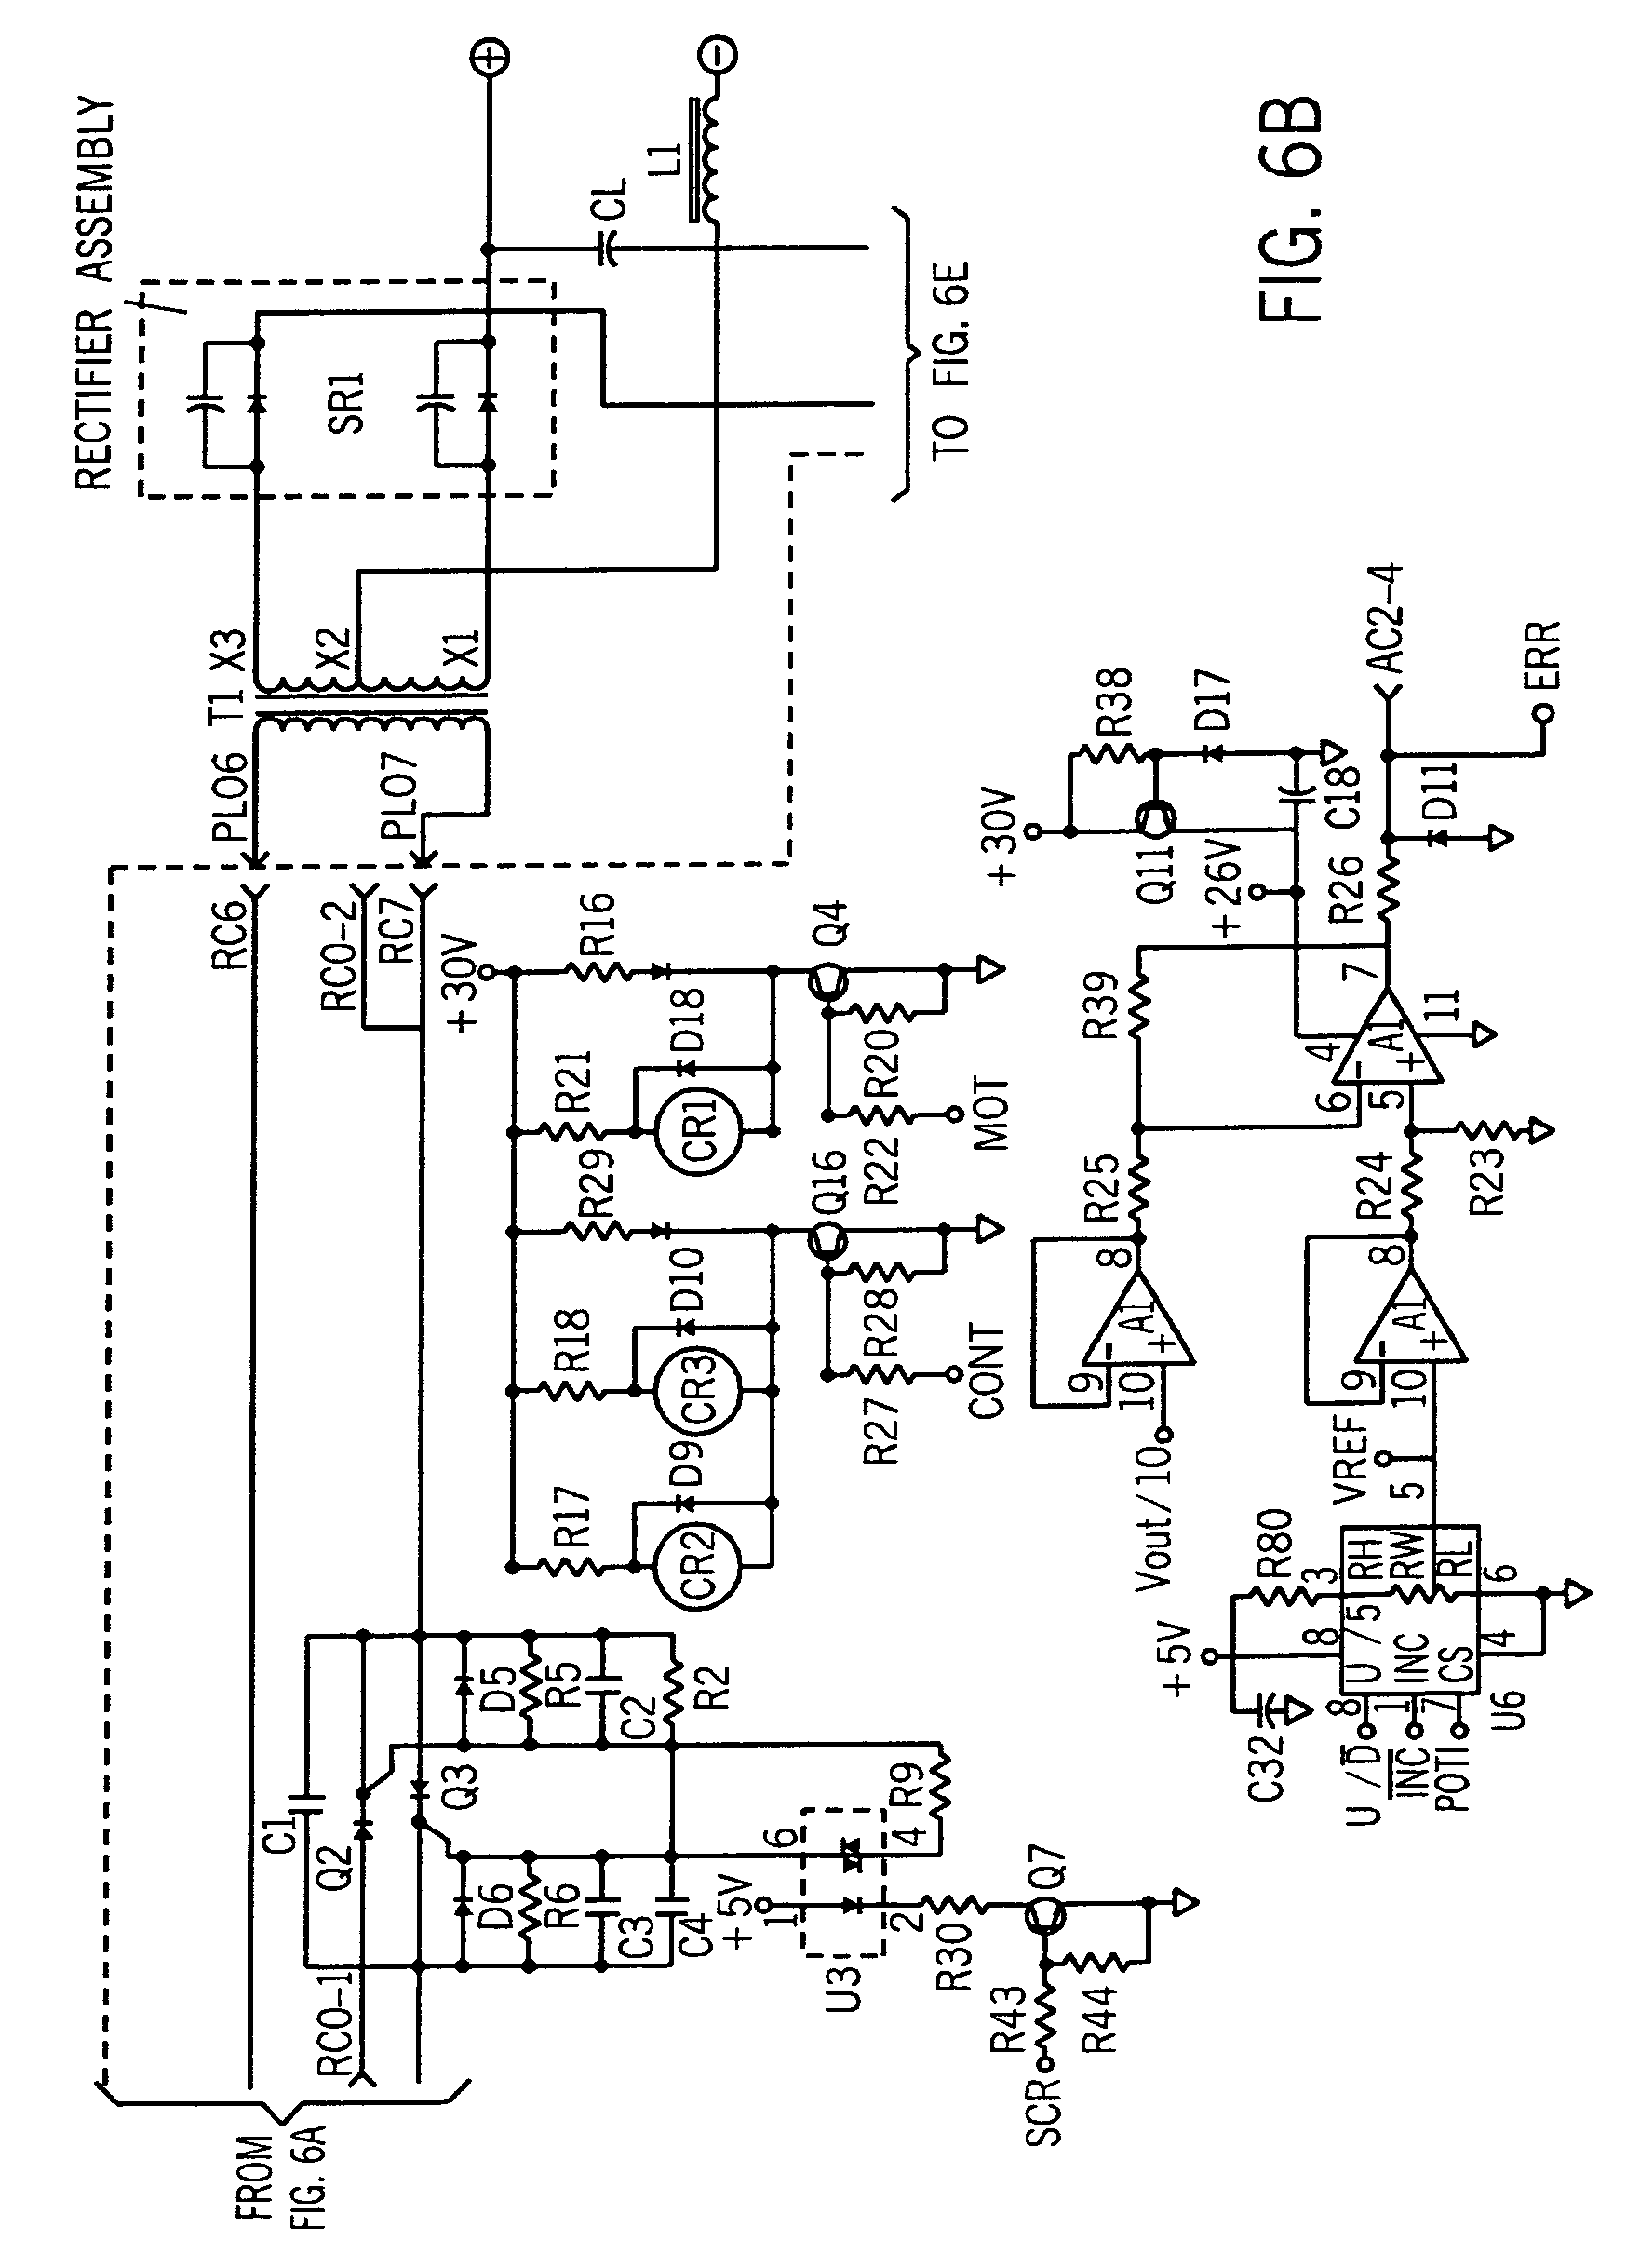 hobart handler 120 wiring diagram auto electrical wiring diagram u2022 rh 6weeks co uk